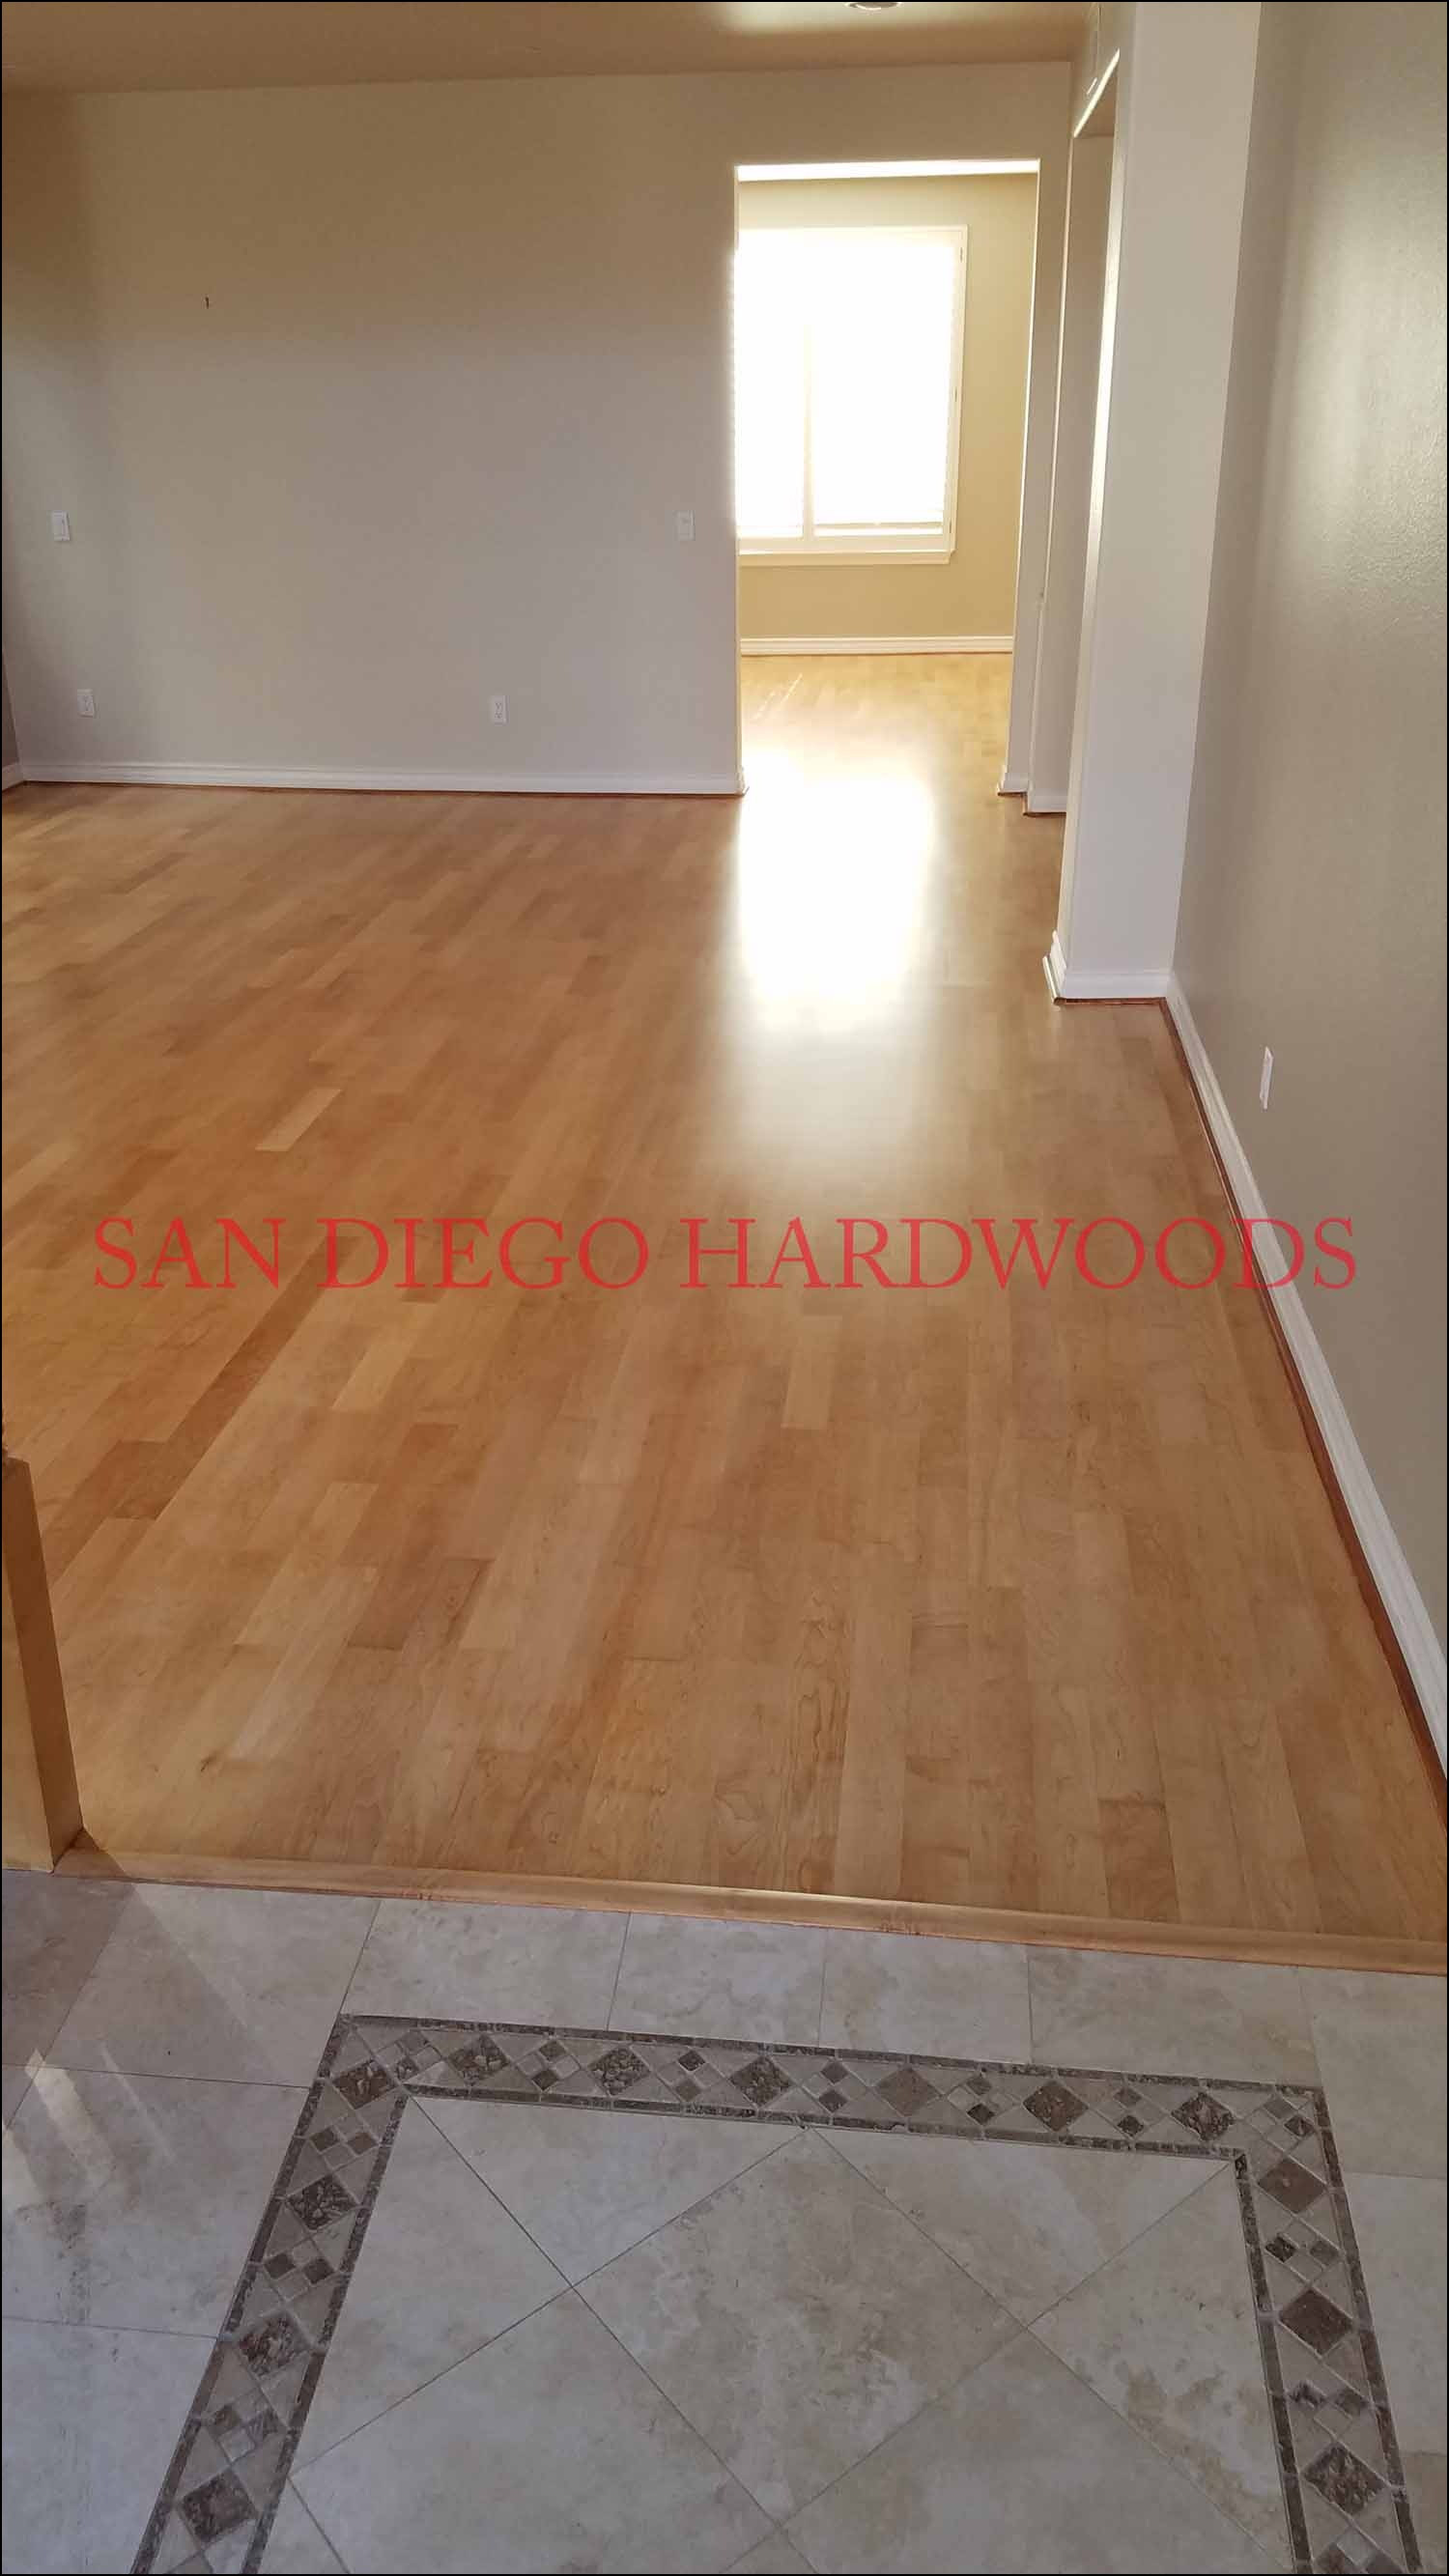 Solid Hardwood Floor Underlayment Options Of Hardwood Flooring Suppliers France Flooring Ideas with Hardwood Flooring Installation San Diego Images San Diego Hardwood Floor Restoration 858 699 0072 Licensed Of